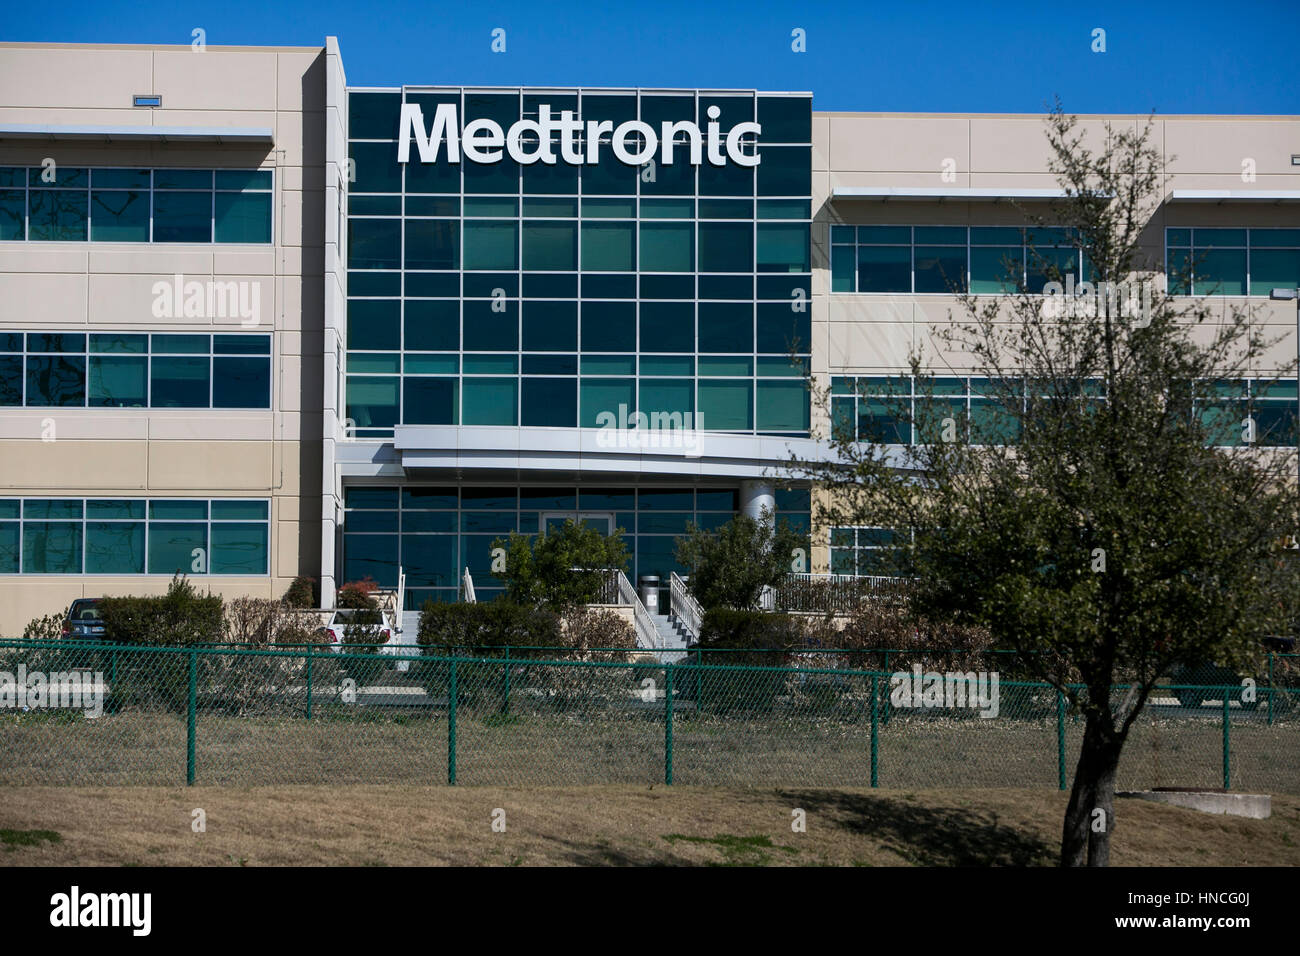 Medtronic Stock Photos & Medtronic Stock Images - Page 2 - Alamy